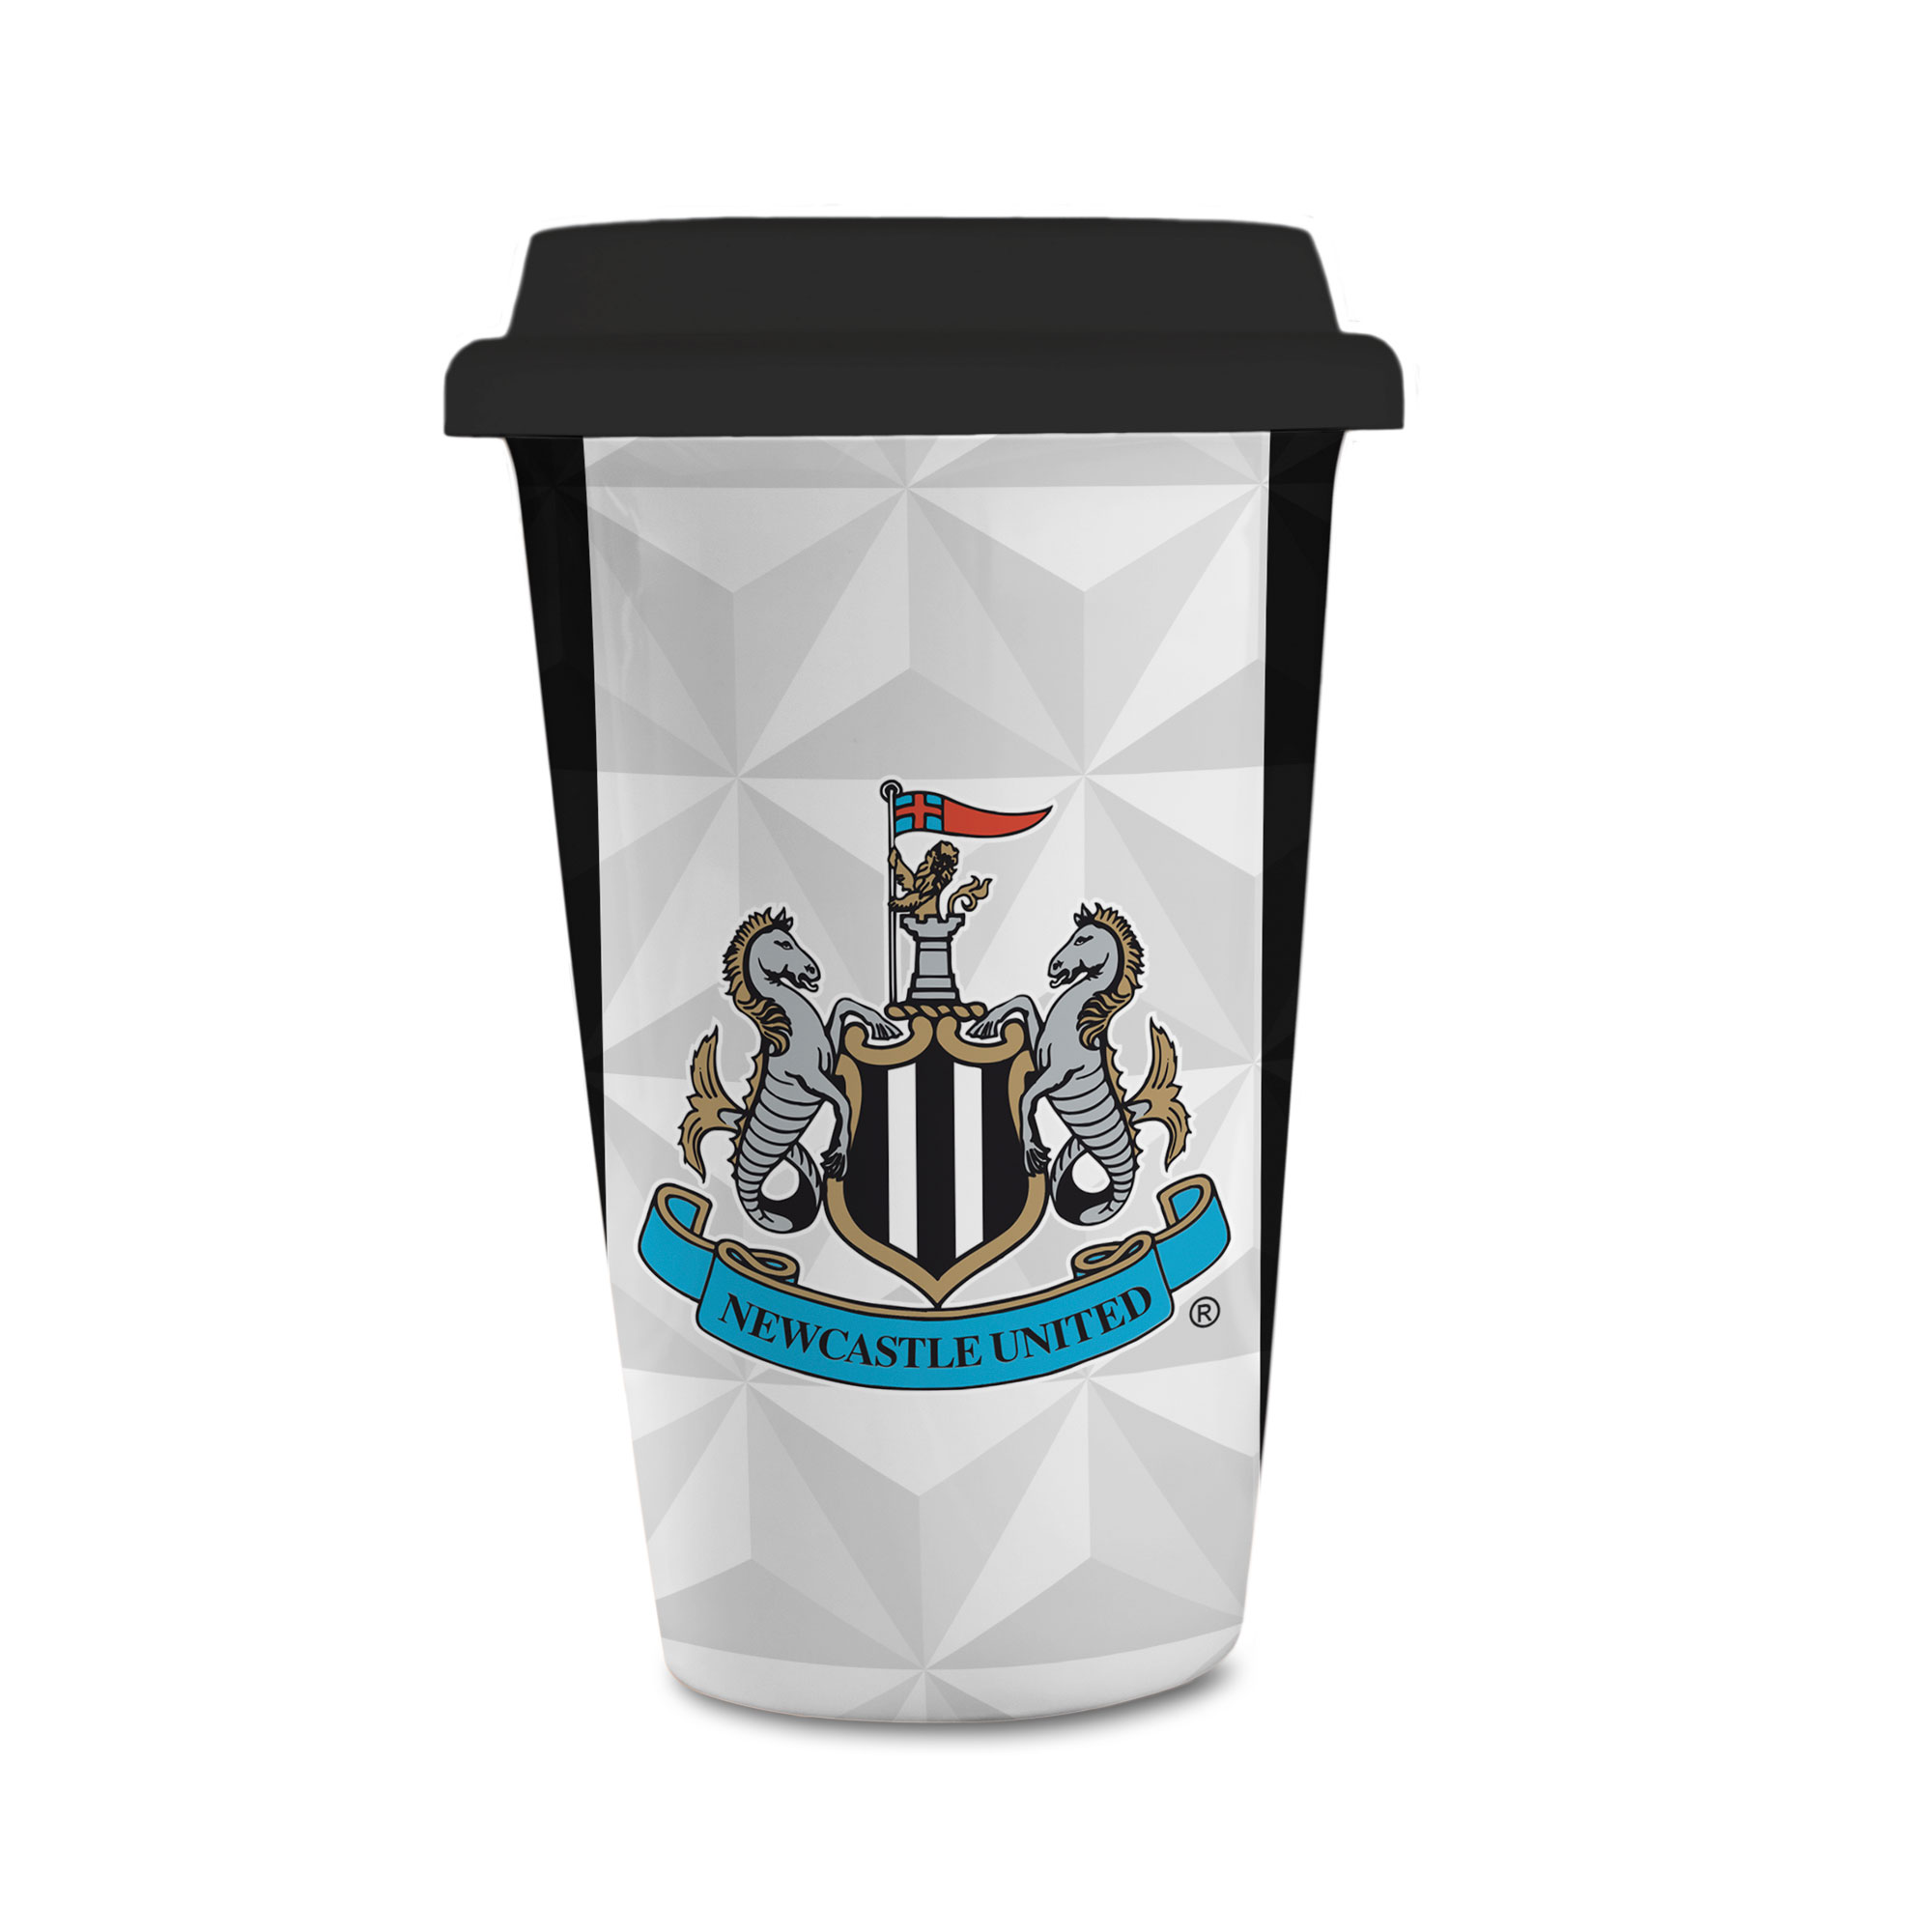 Newcastle United FC Crest Reusable Cup